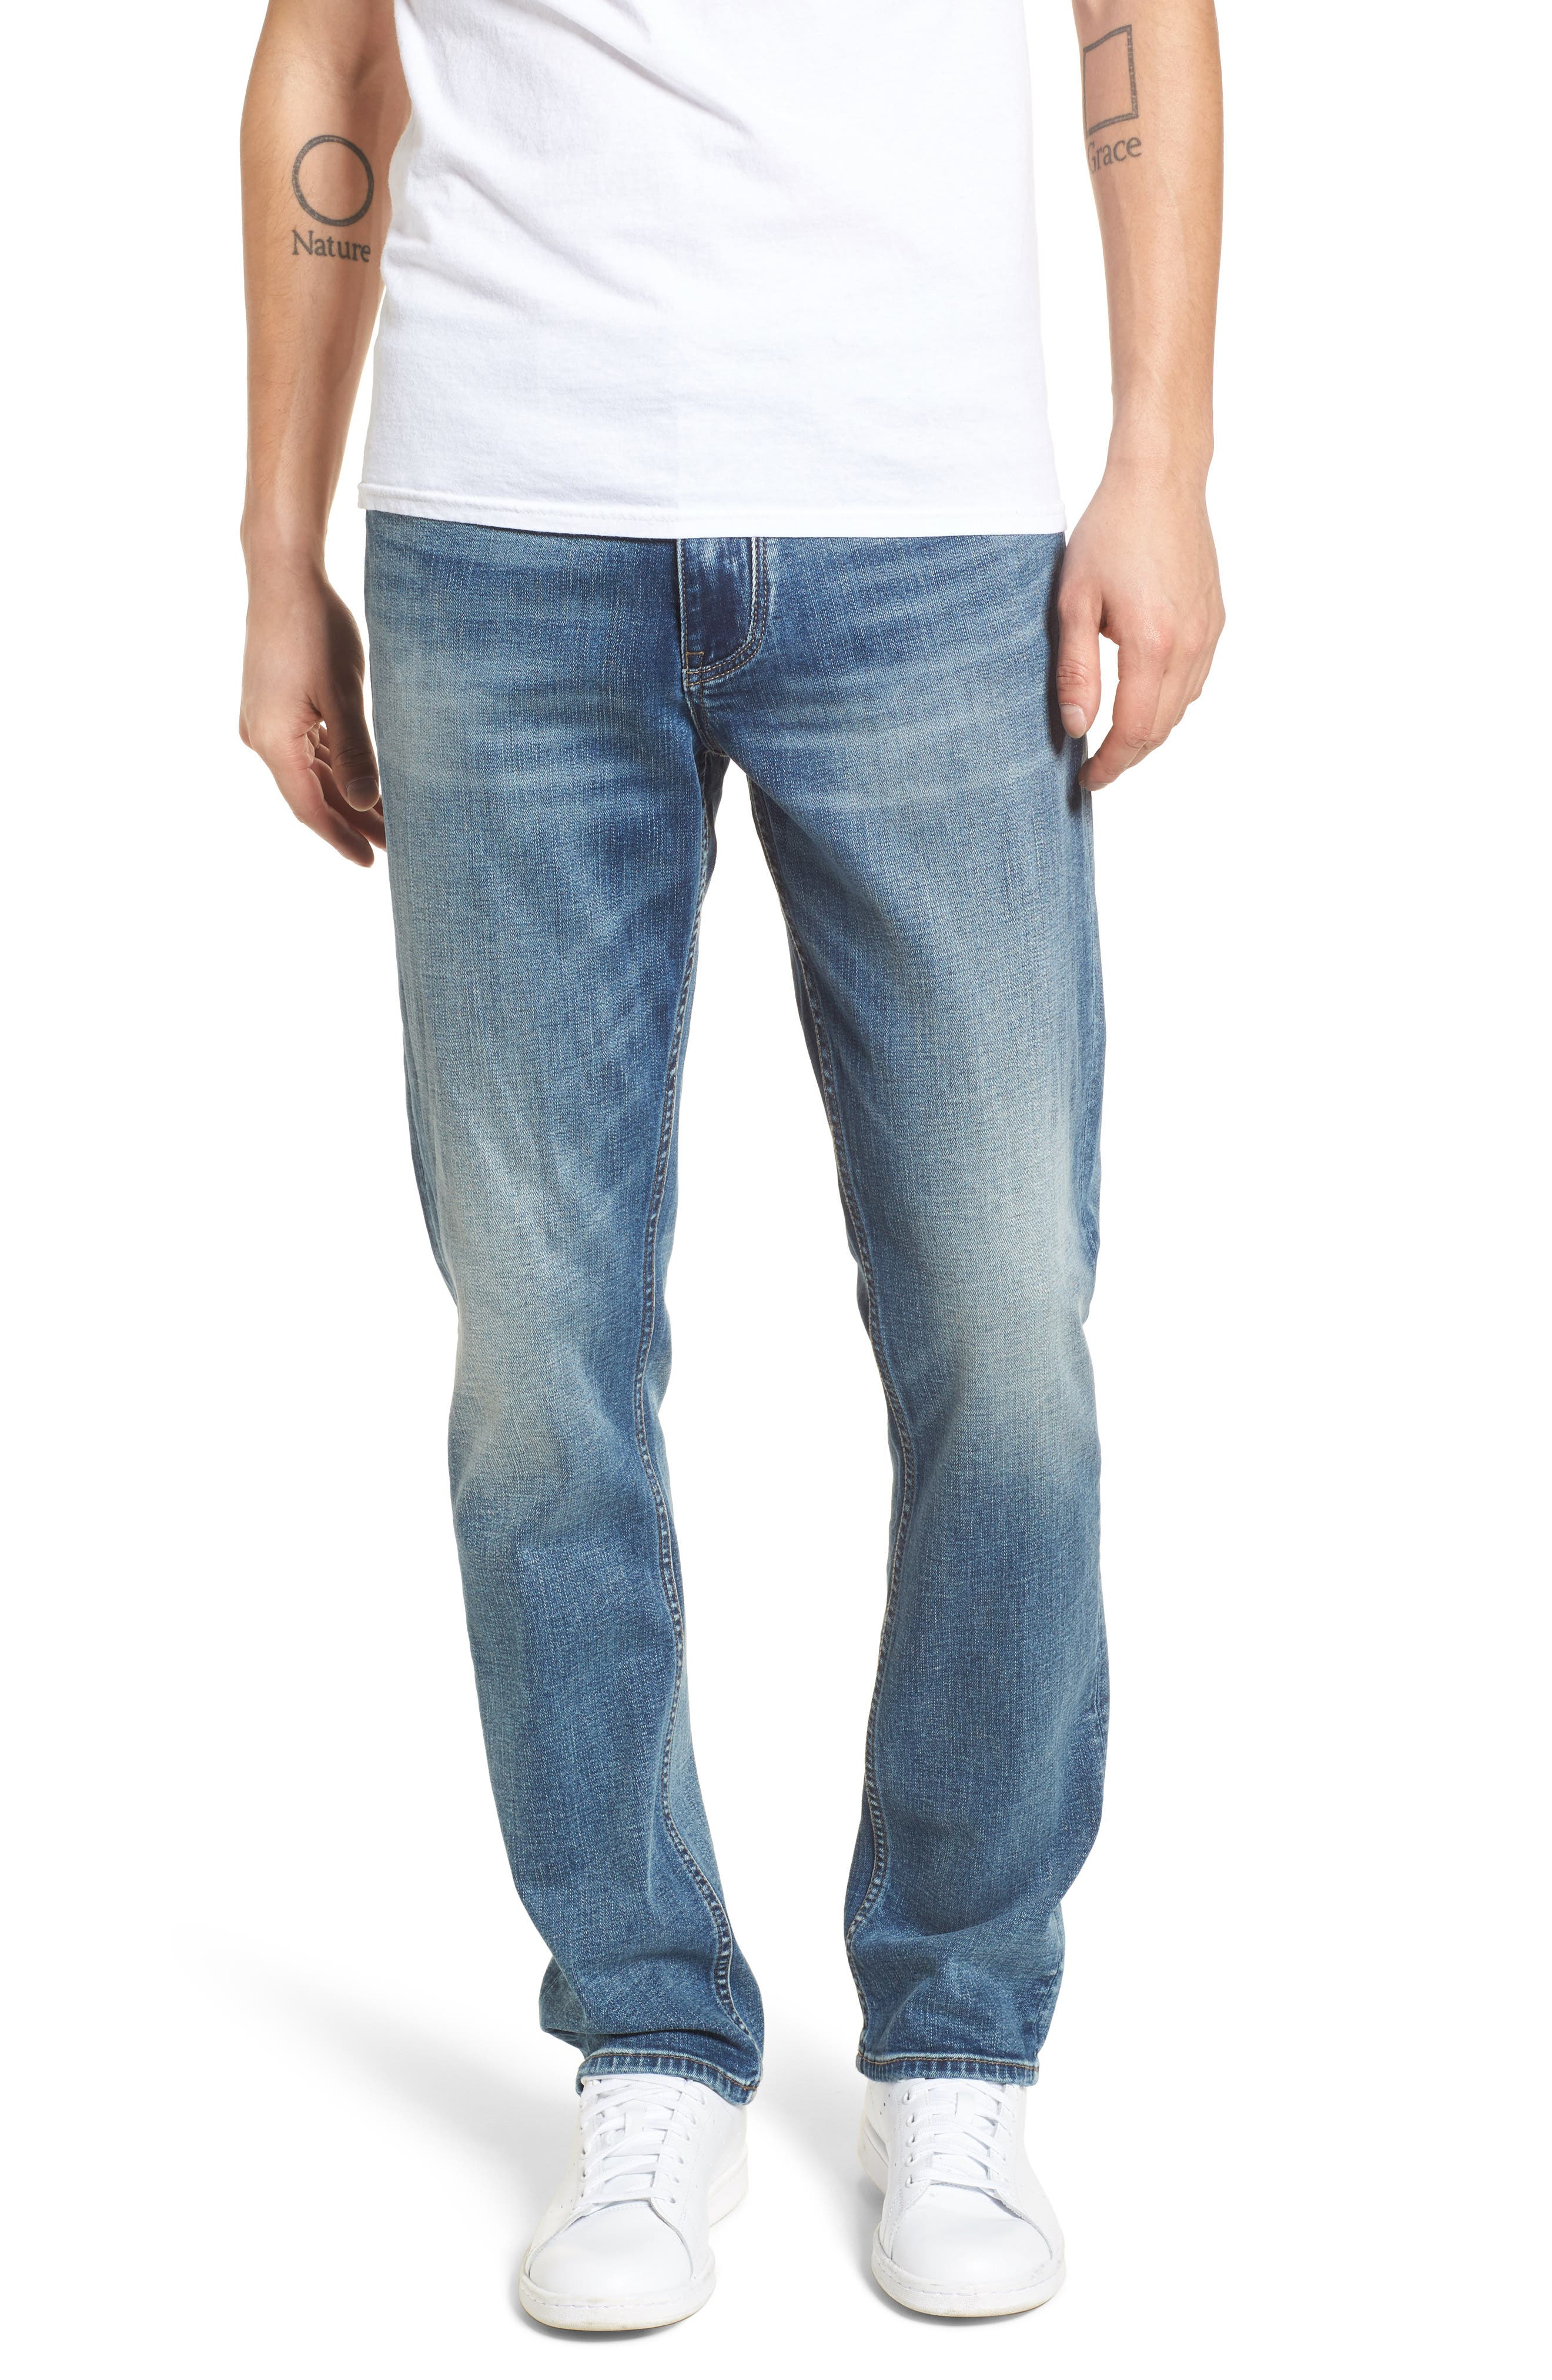 Wooster Slim Fit Jeans,                             Main thumbnail 1, color,                             400